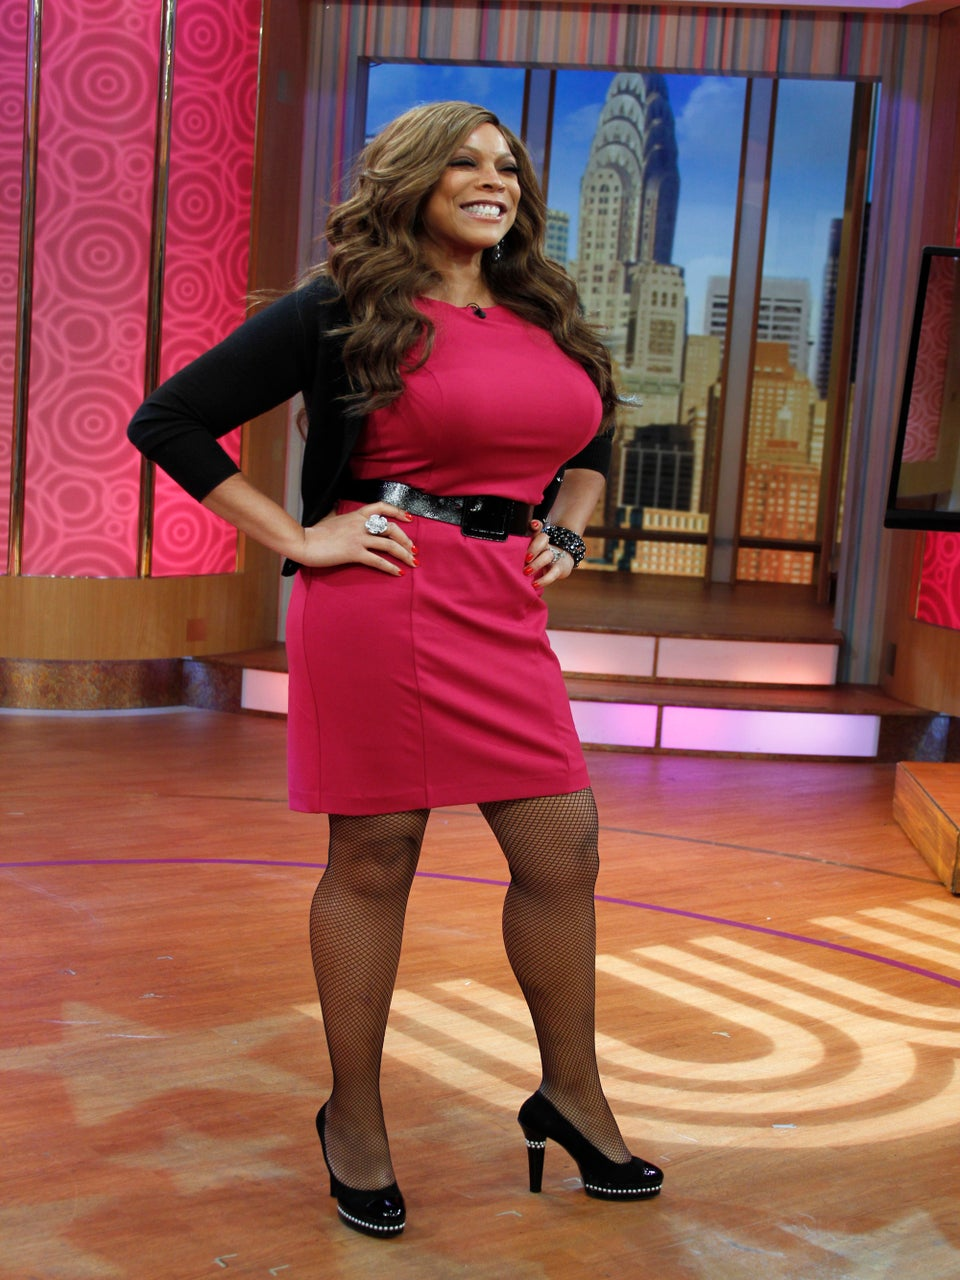 How You Doin'? Wendy Williams' TV Contract Renewed Through 2022